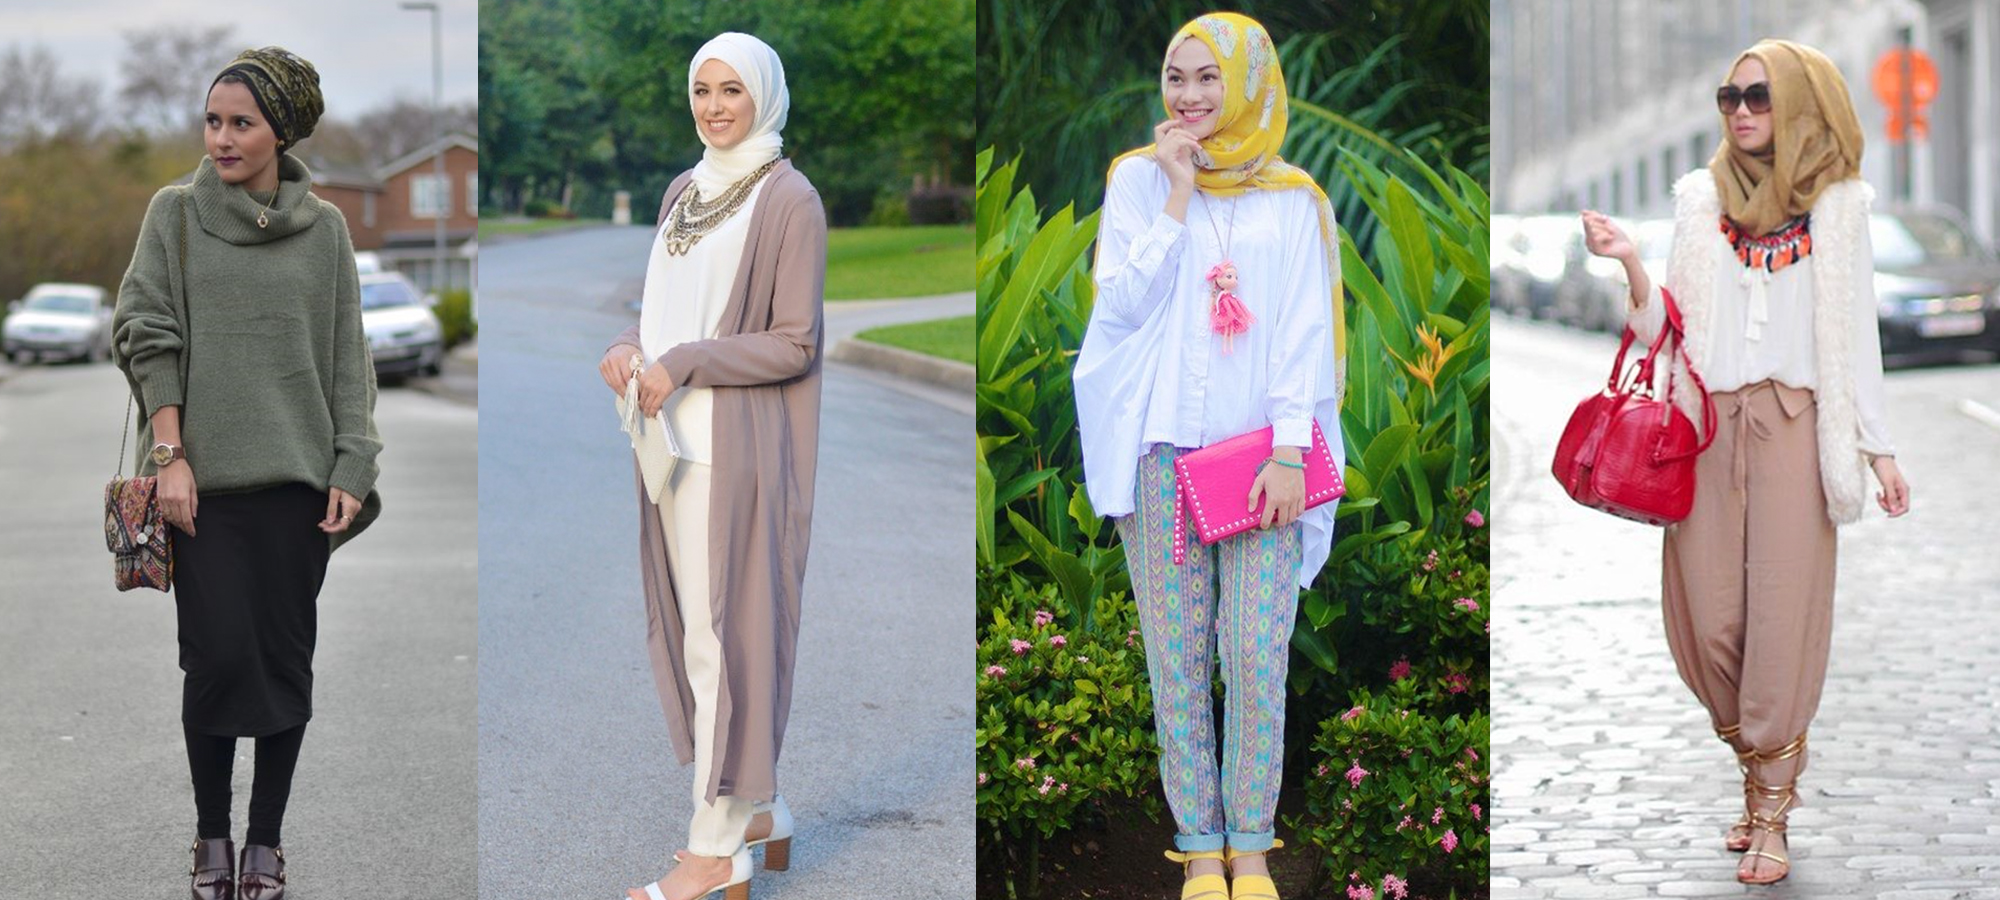 The Modest Fashion Revolution: 8 Muslim Fashion Bloggers To Watch